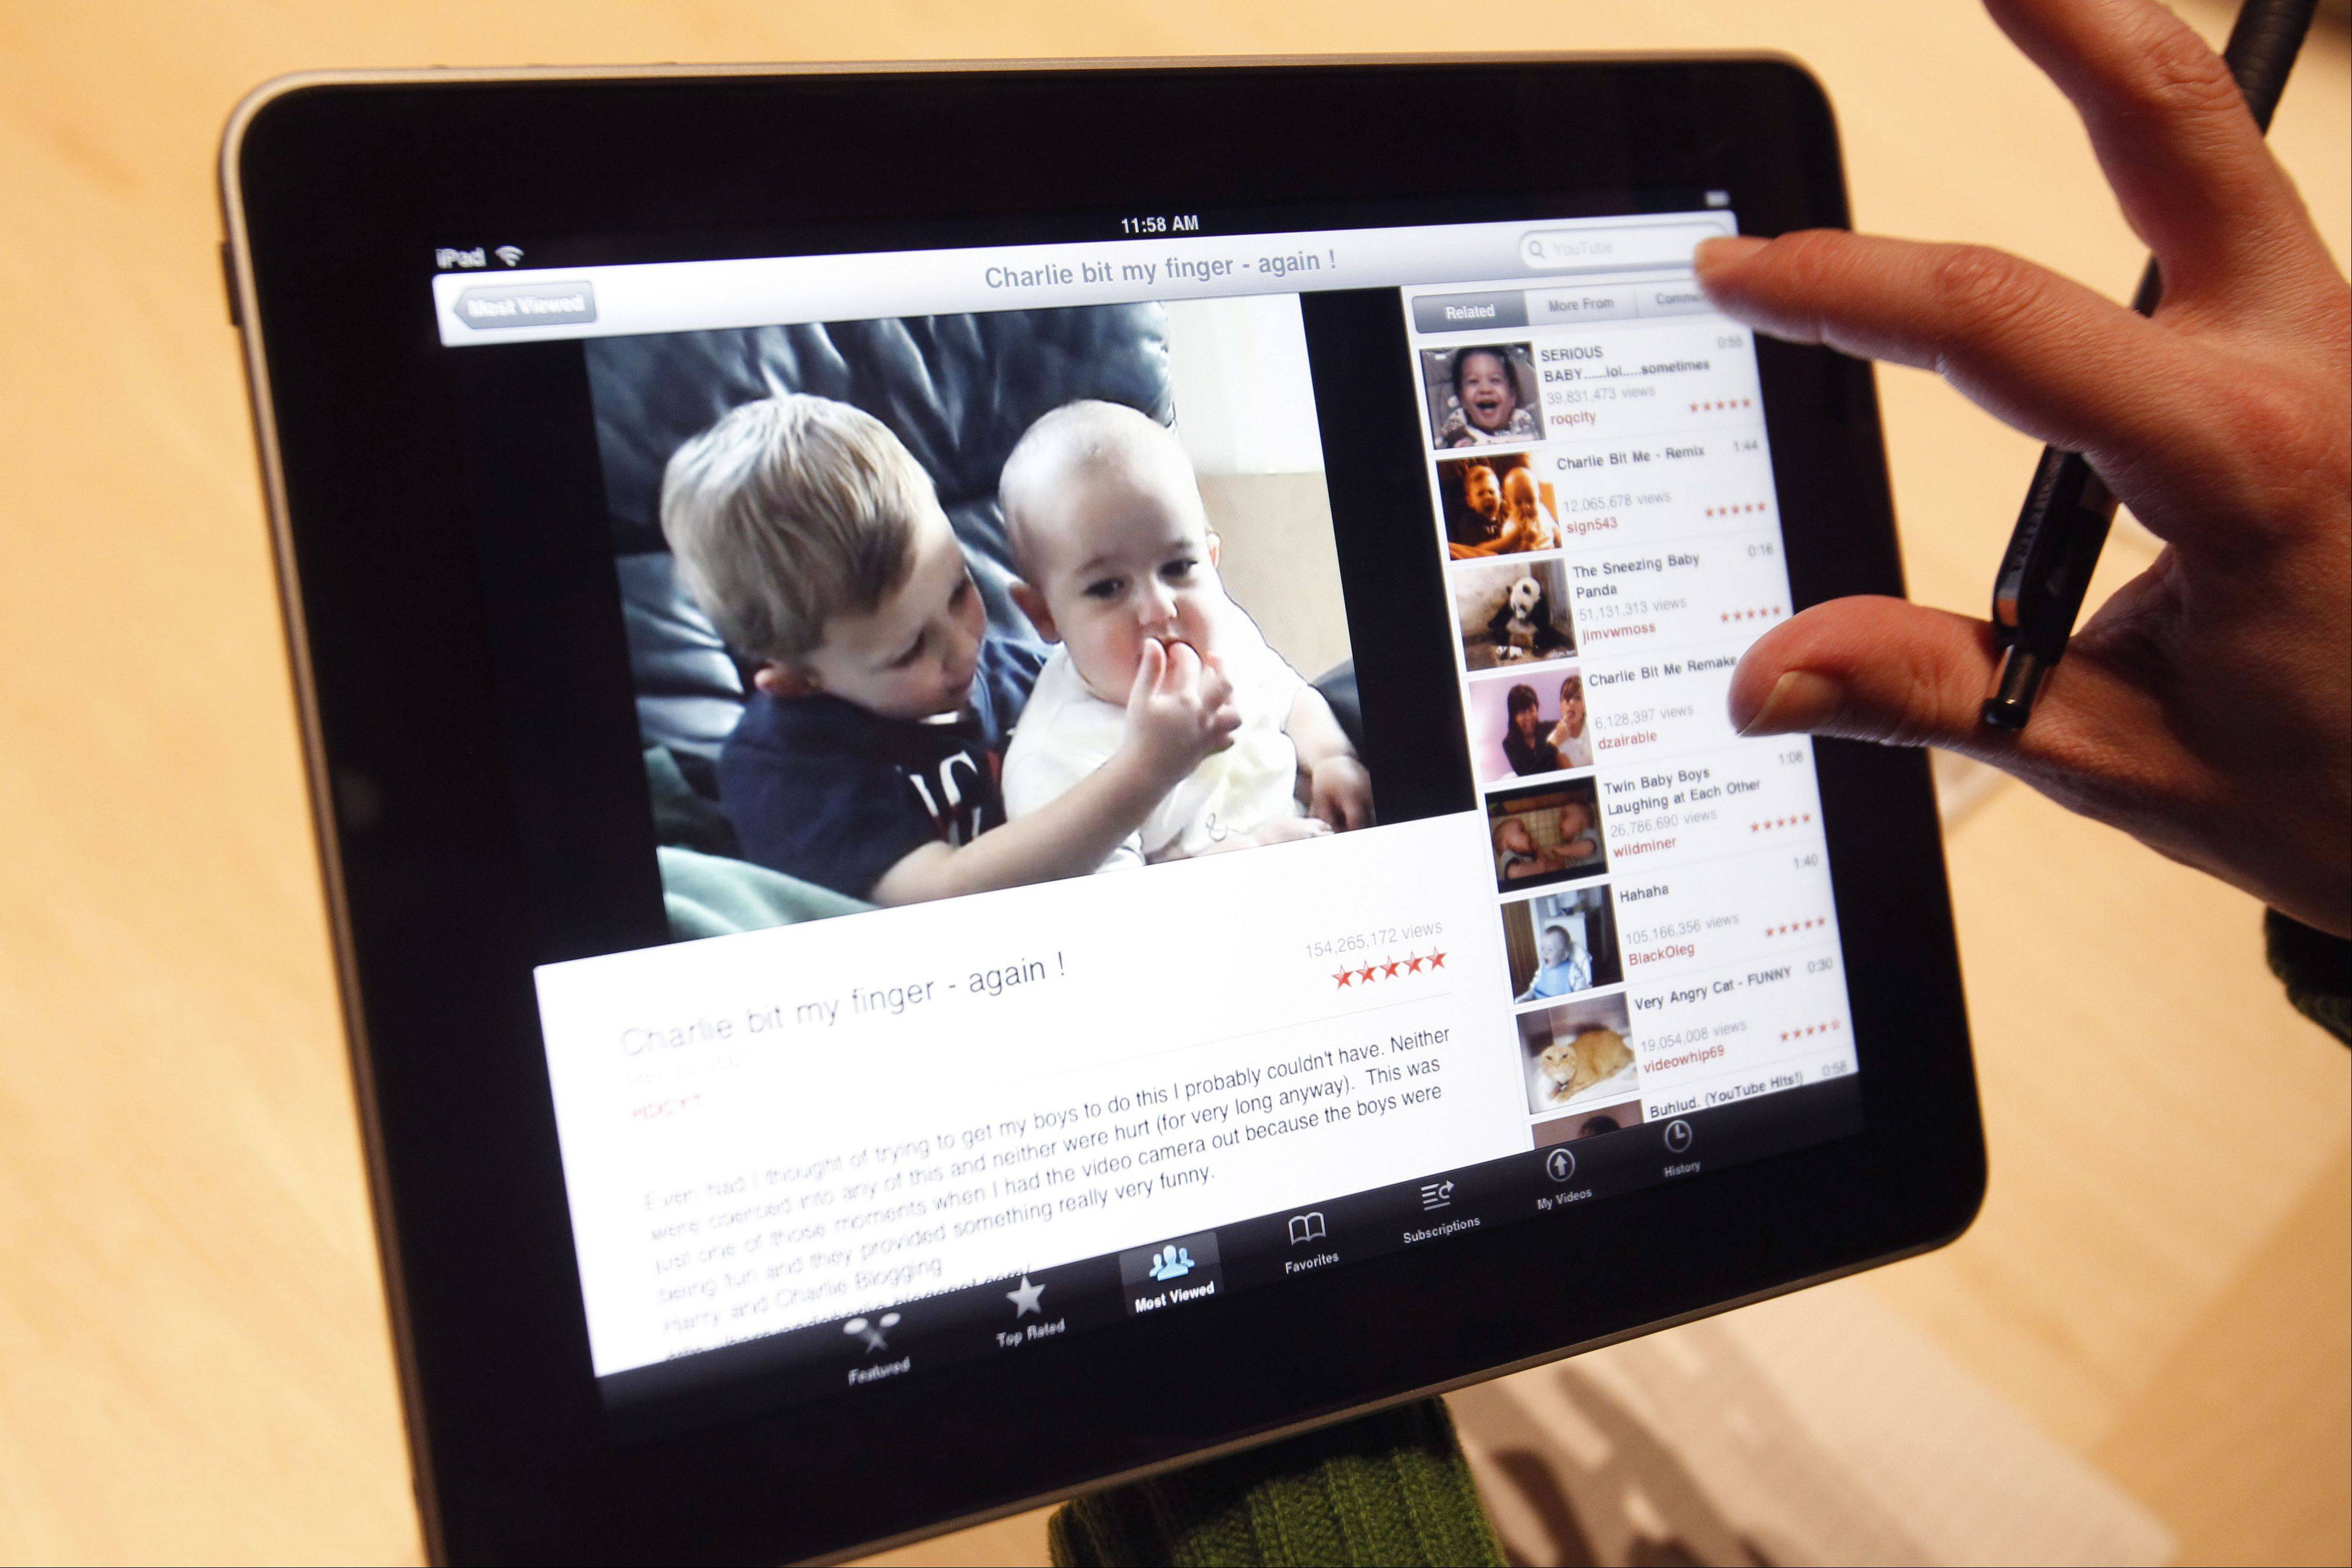 ASSOCIATED PRESSApple stock slid Wednesday, in part over concerns the iPad was losing market share in the tablet battle.